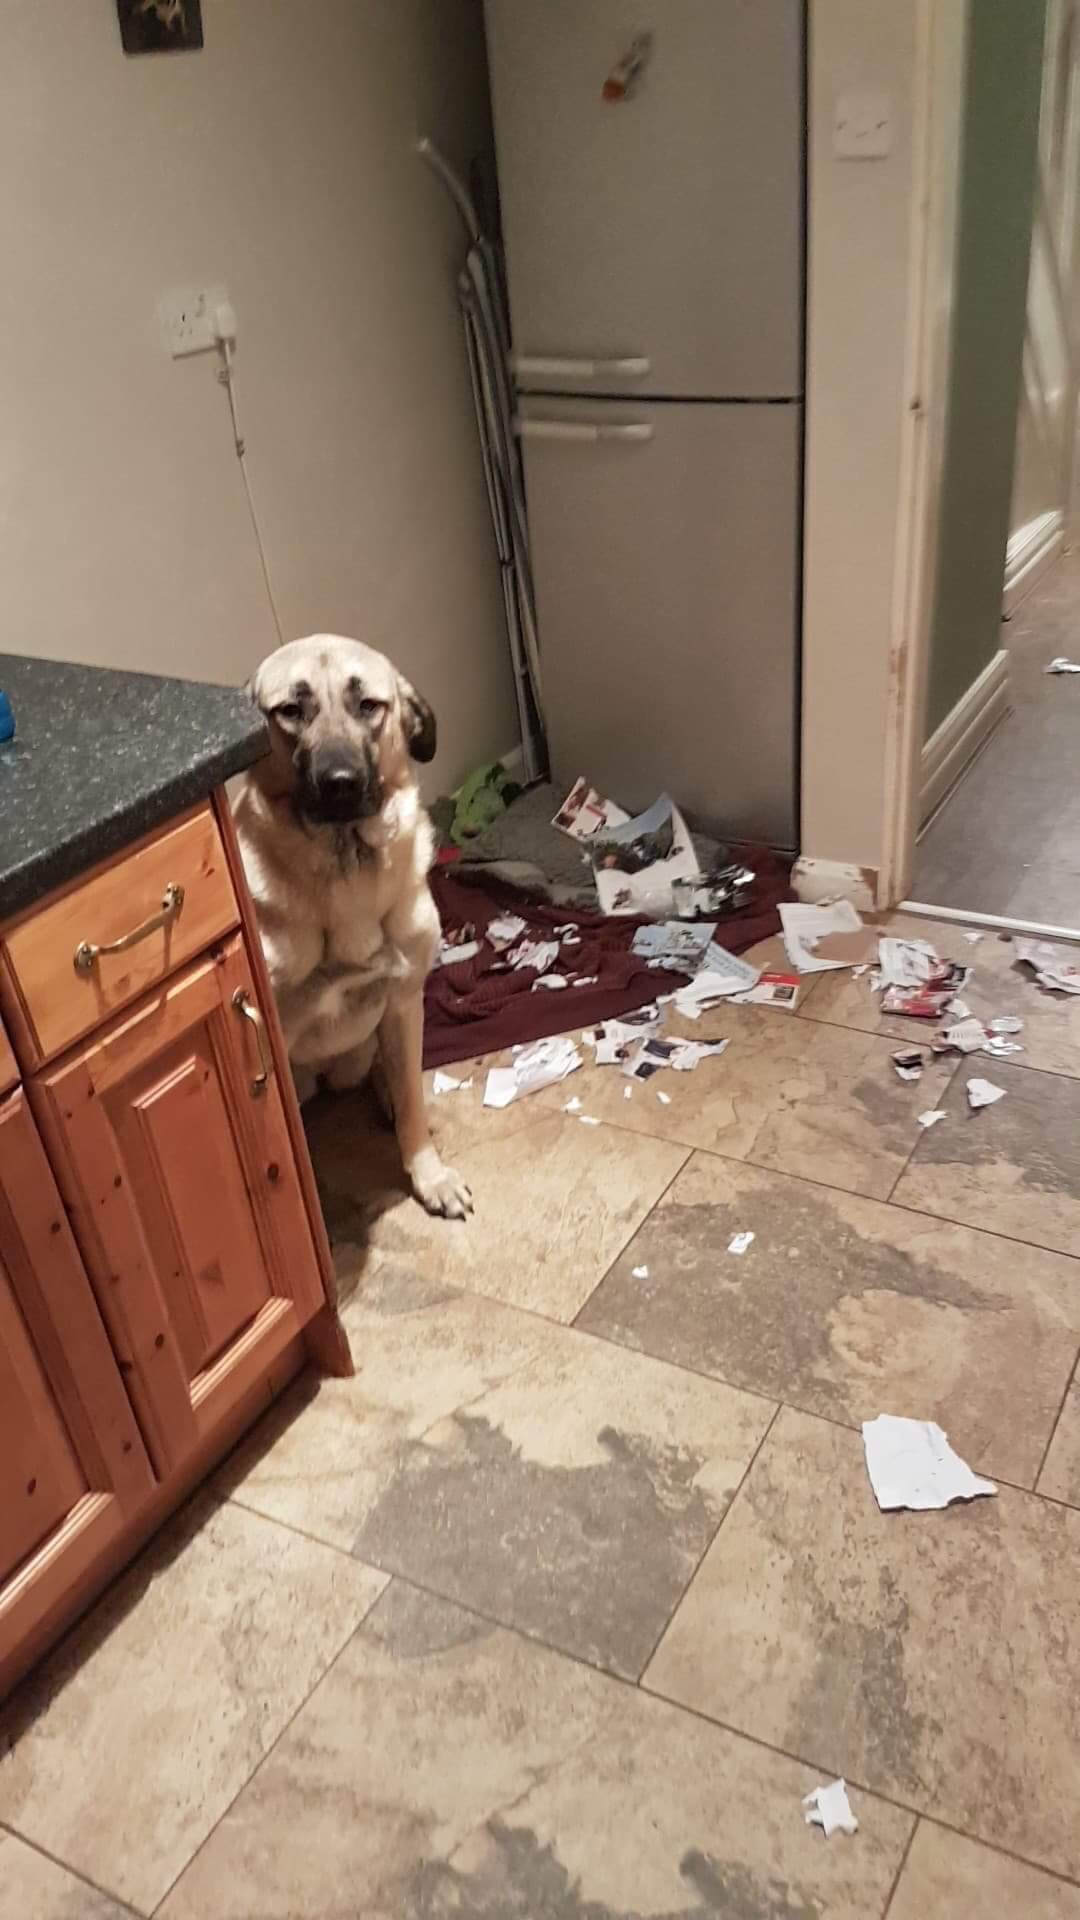 Dog destroying house due to anxiety when left alone